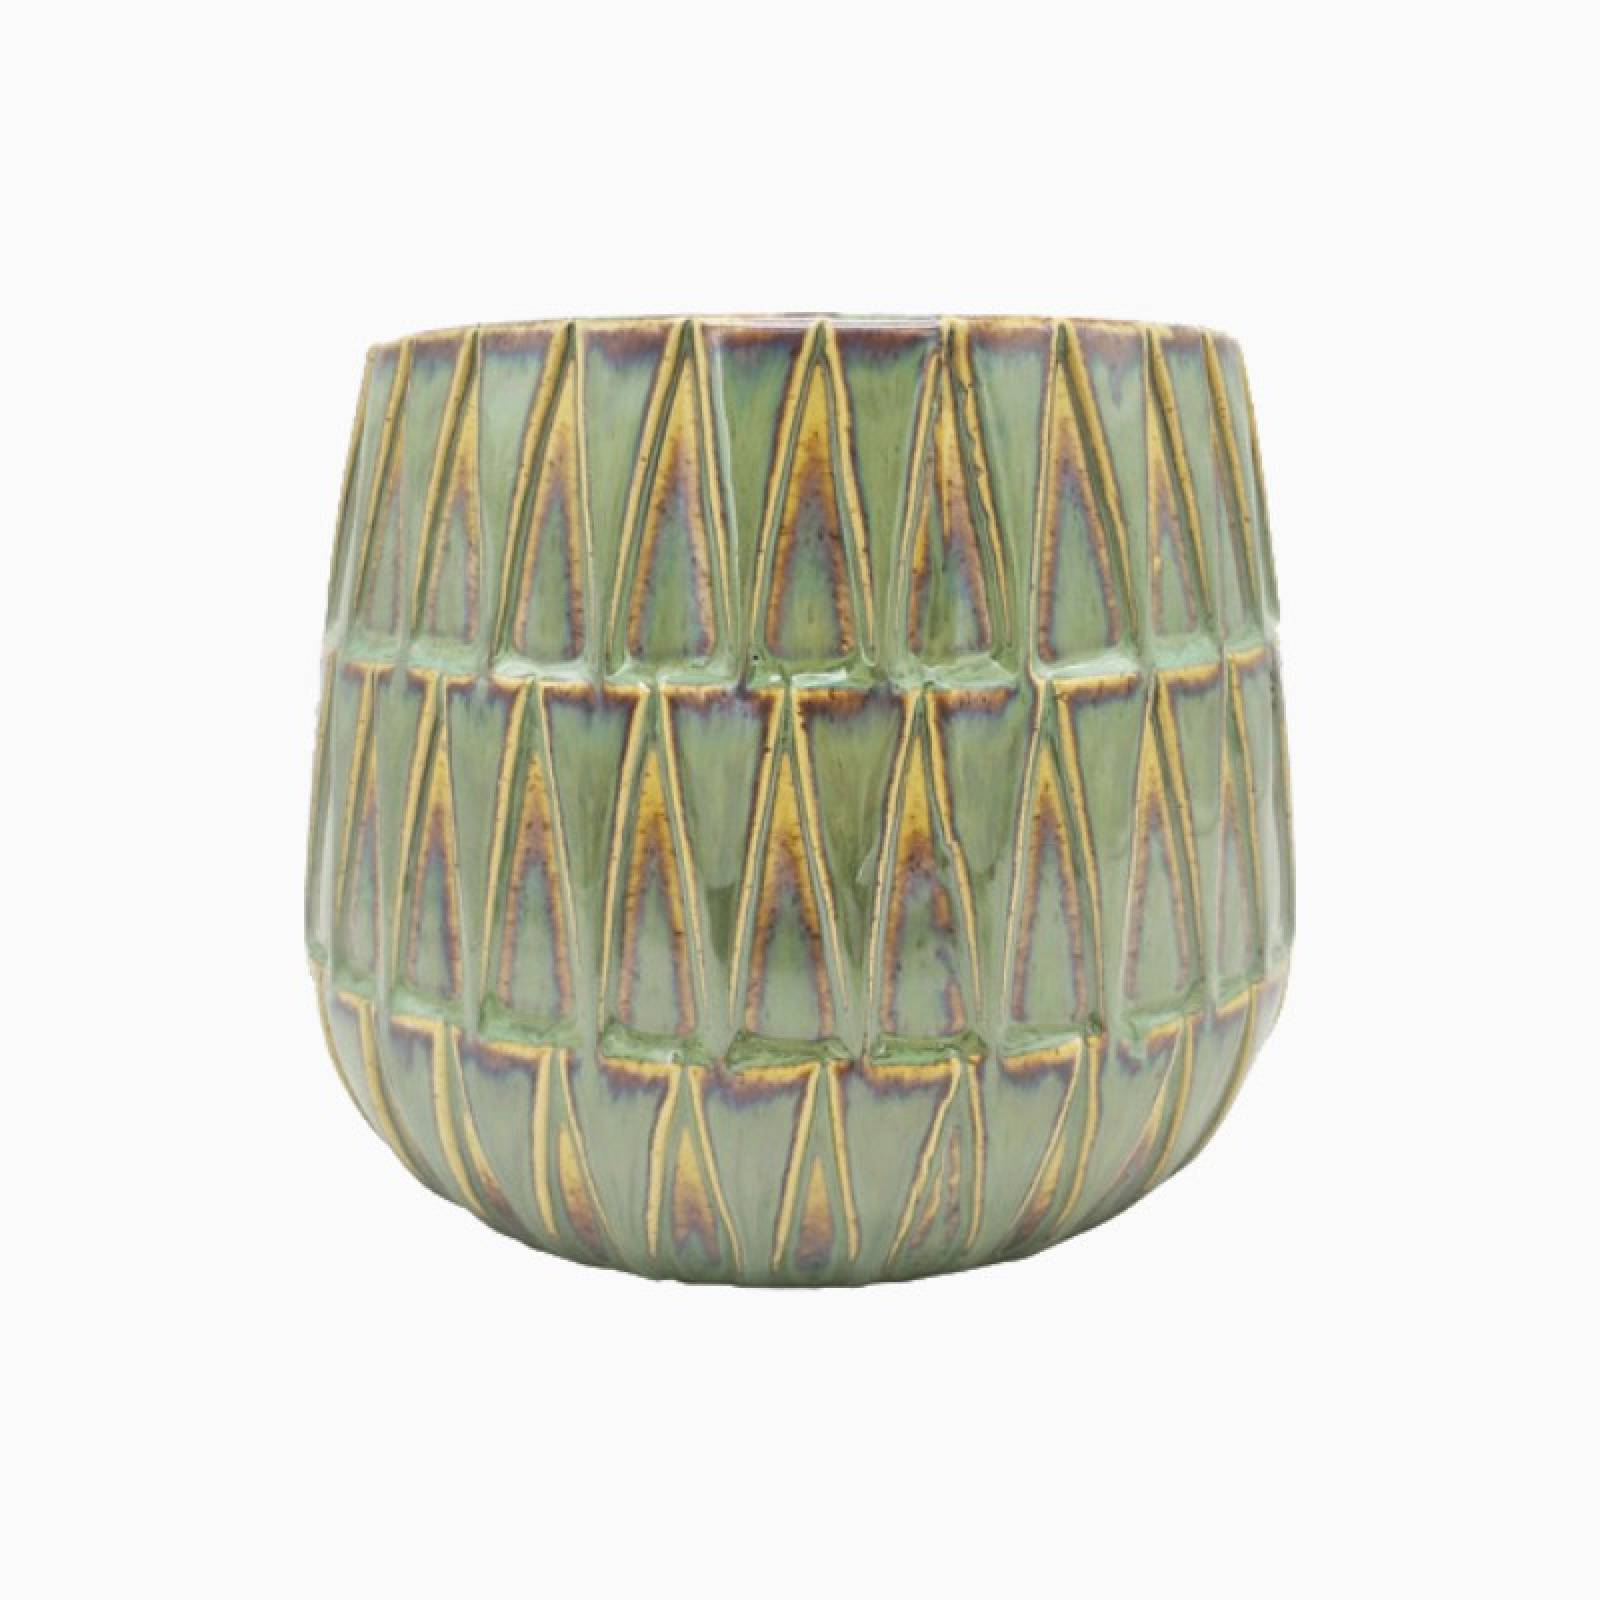 Nomad Large Green Patterned Plant Pot thumbnails